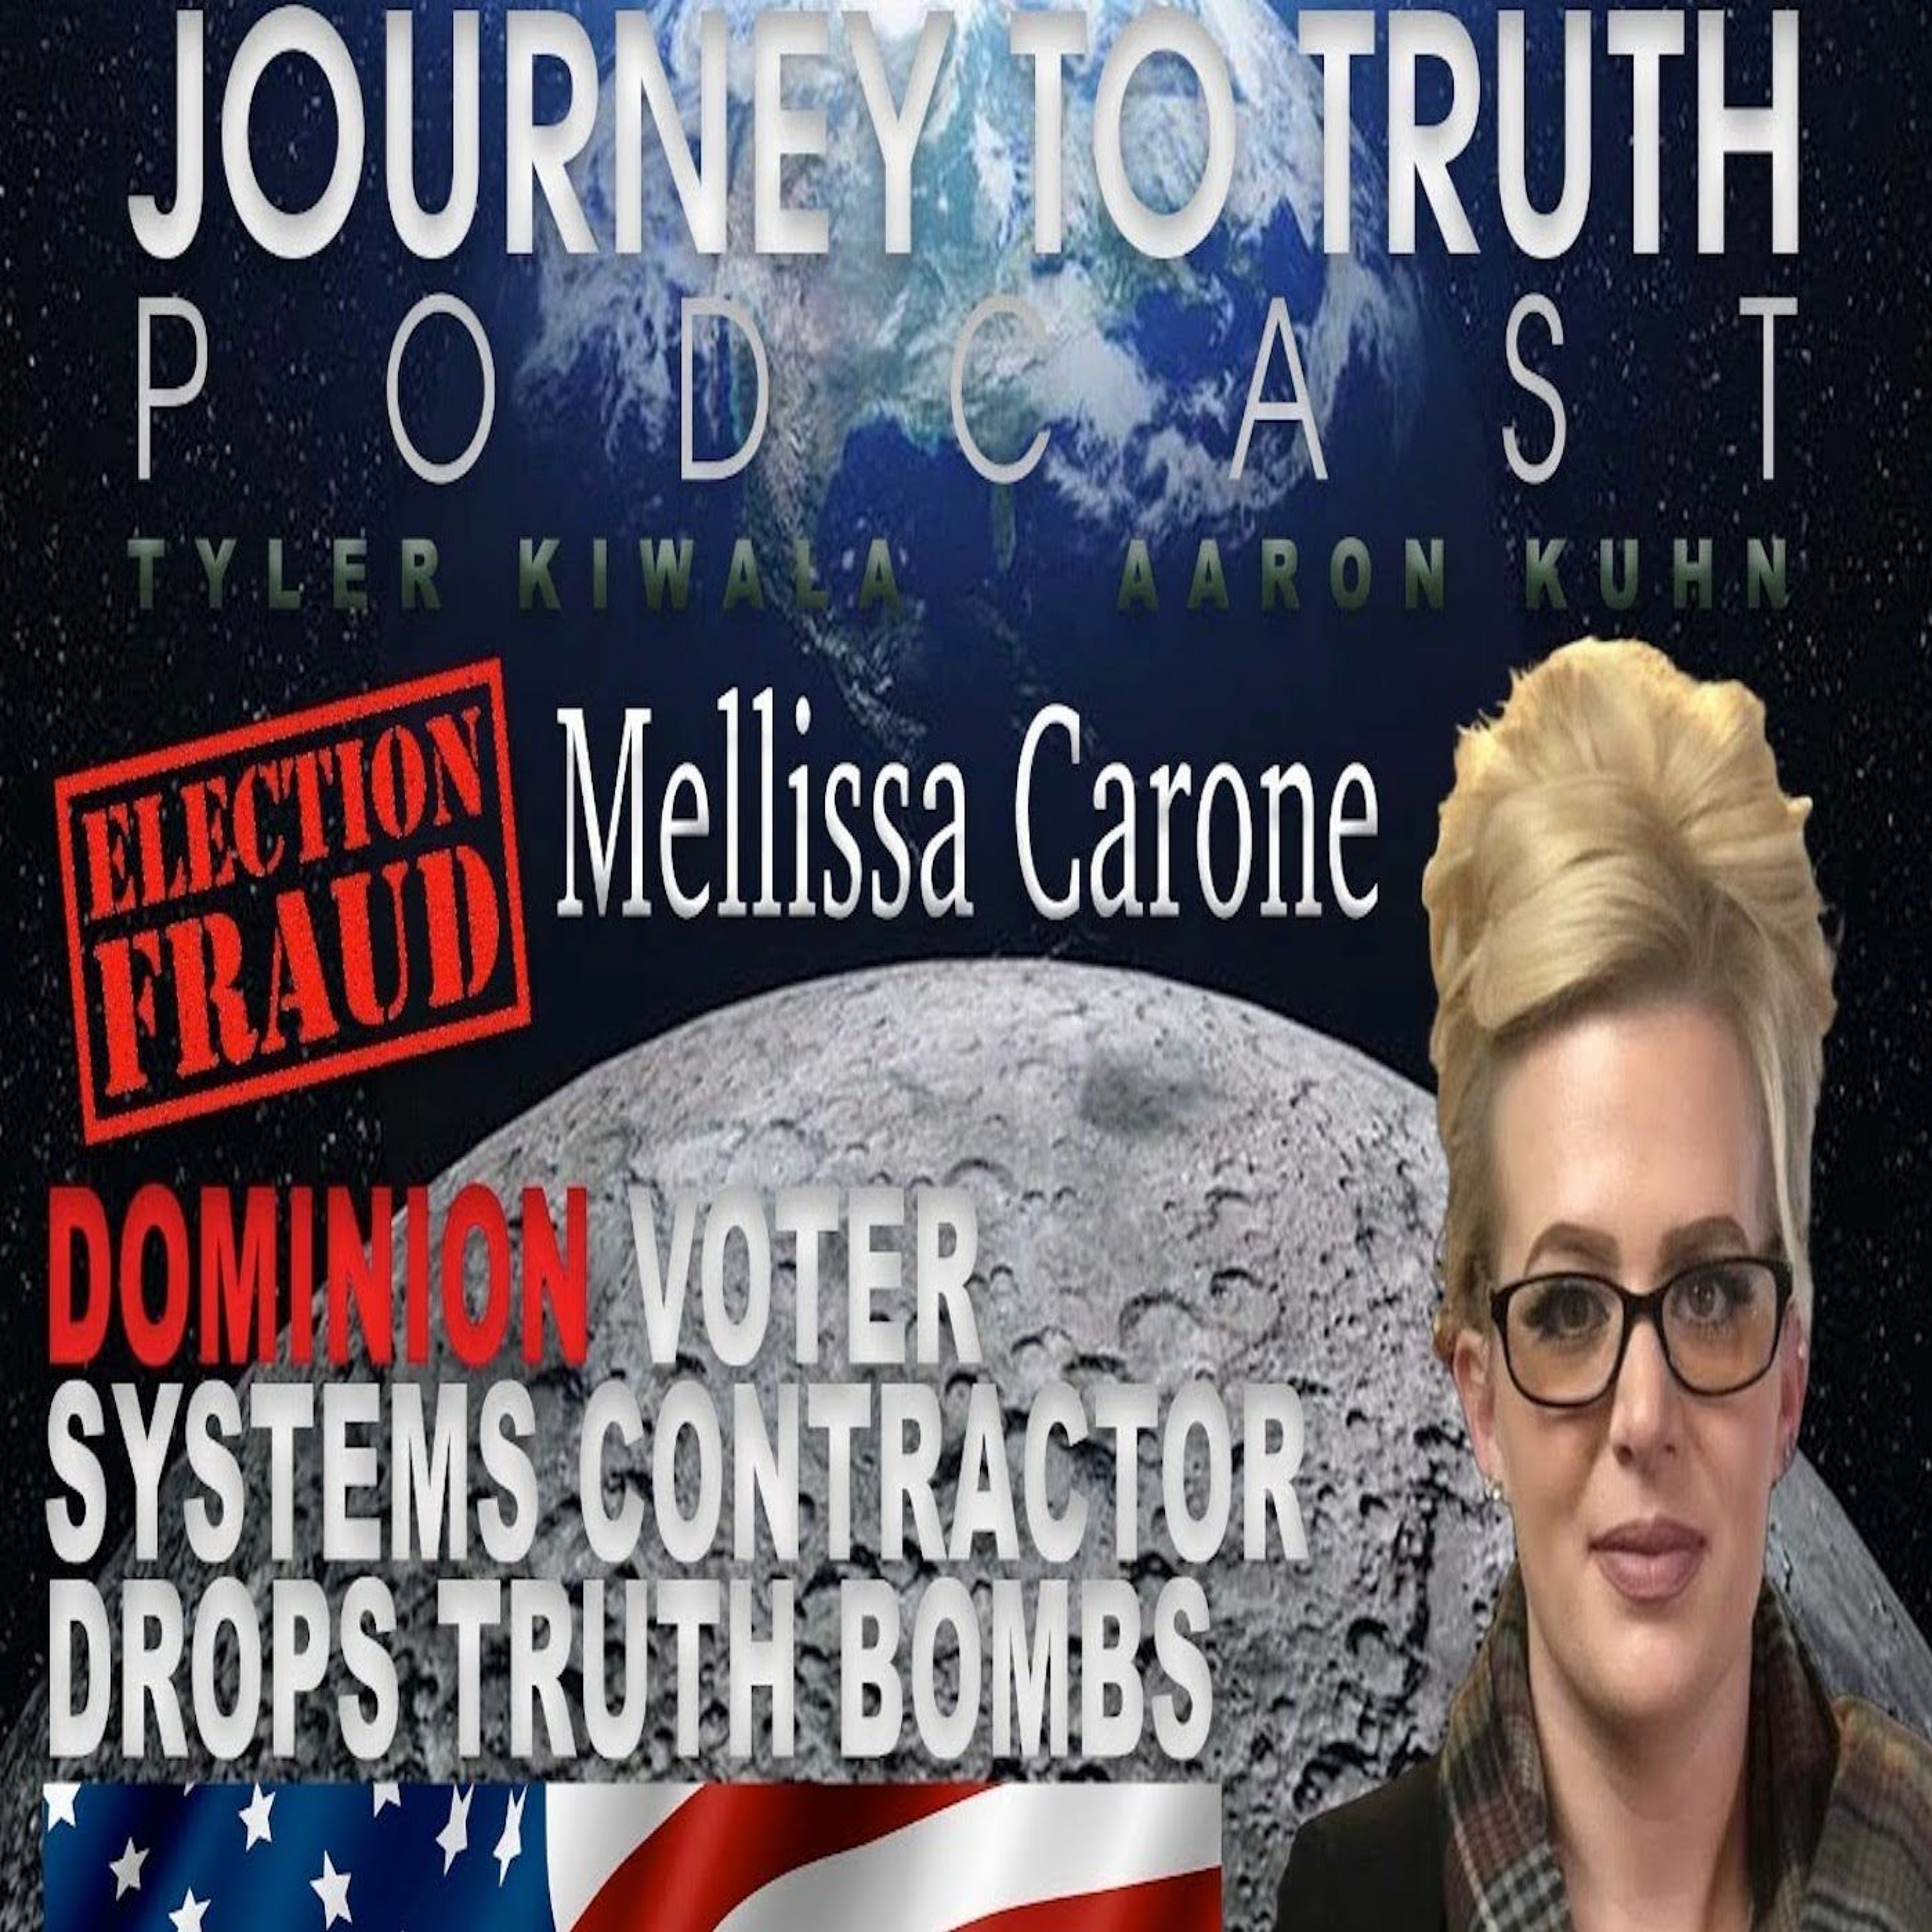 Ep 95 - Live w/ Mellissa Carone - All Claims About Election Fraud Have NOT Been Disputed